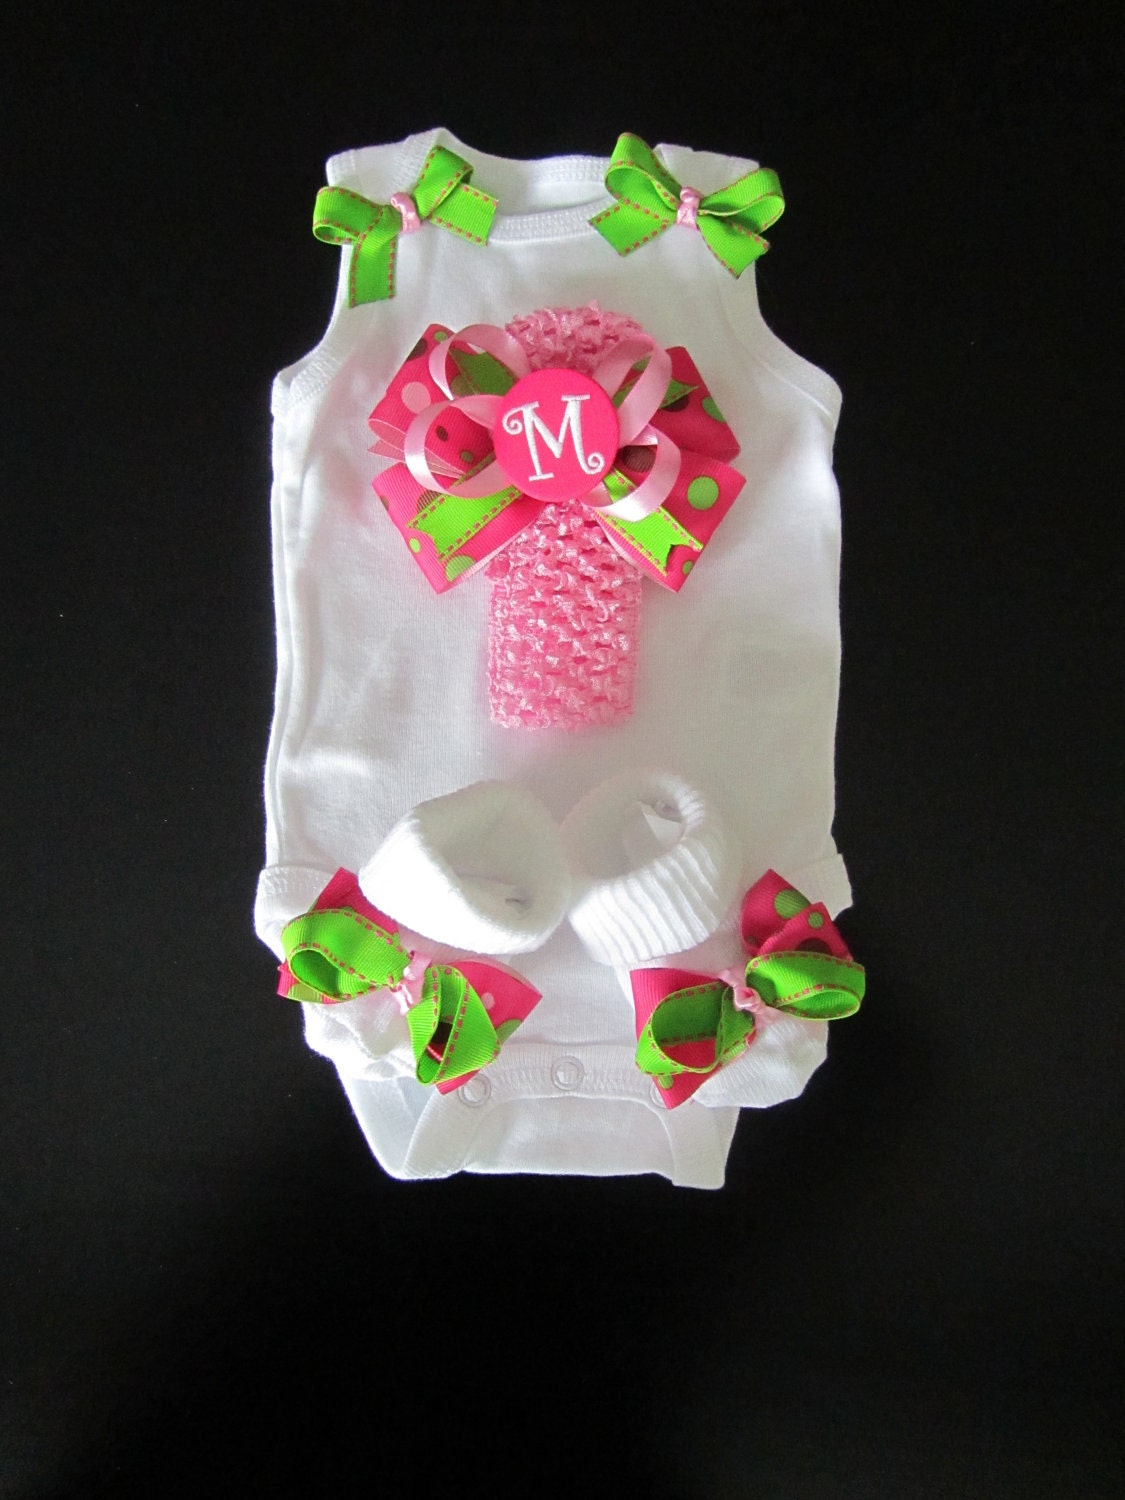 Monogram Baby Girl Clothing Gift Set Newborn Bowtiquemama